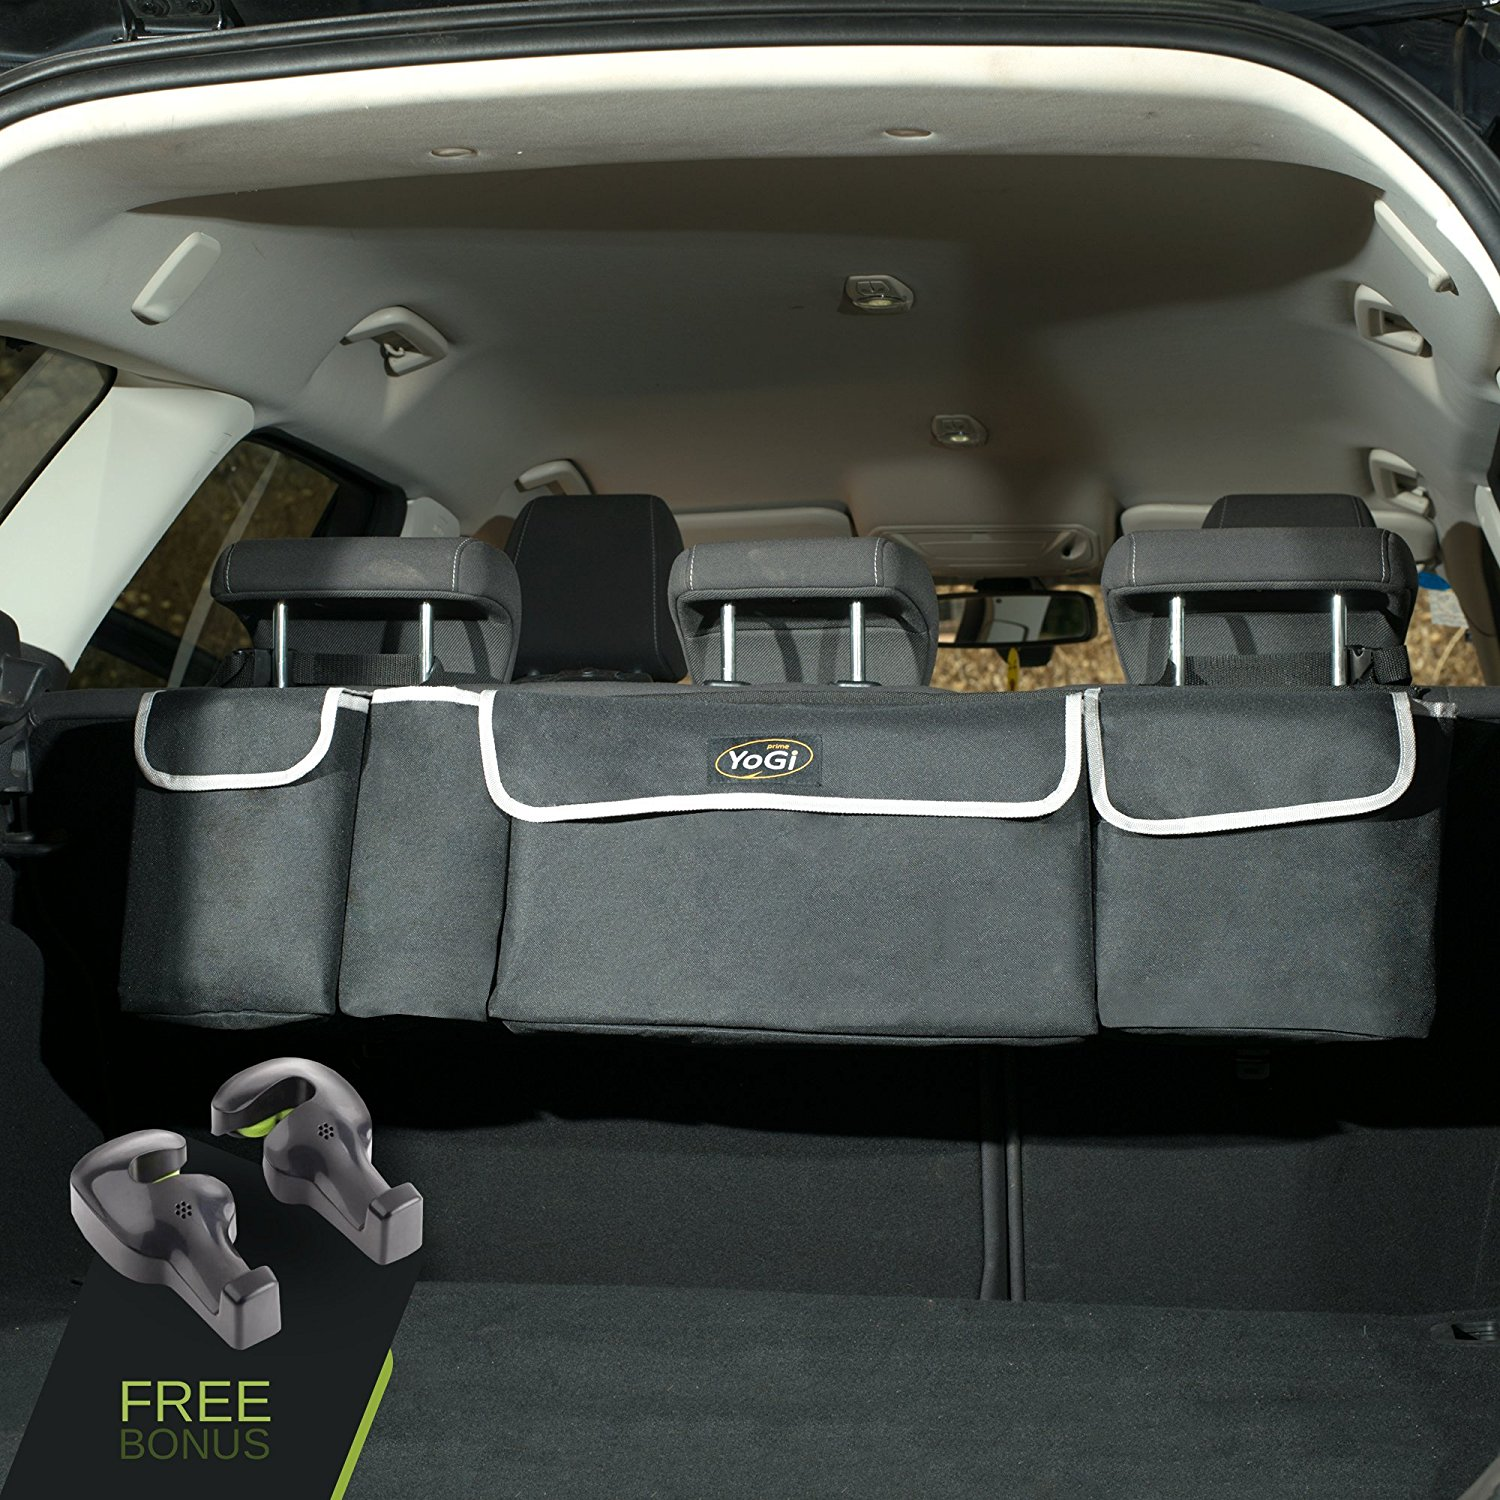 YoGi prime trunk and backseat car organizer